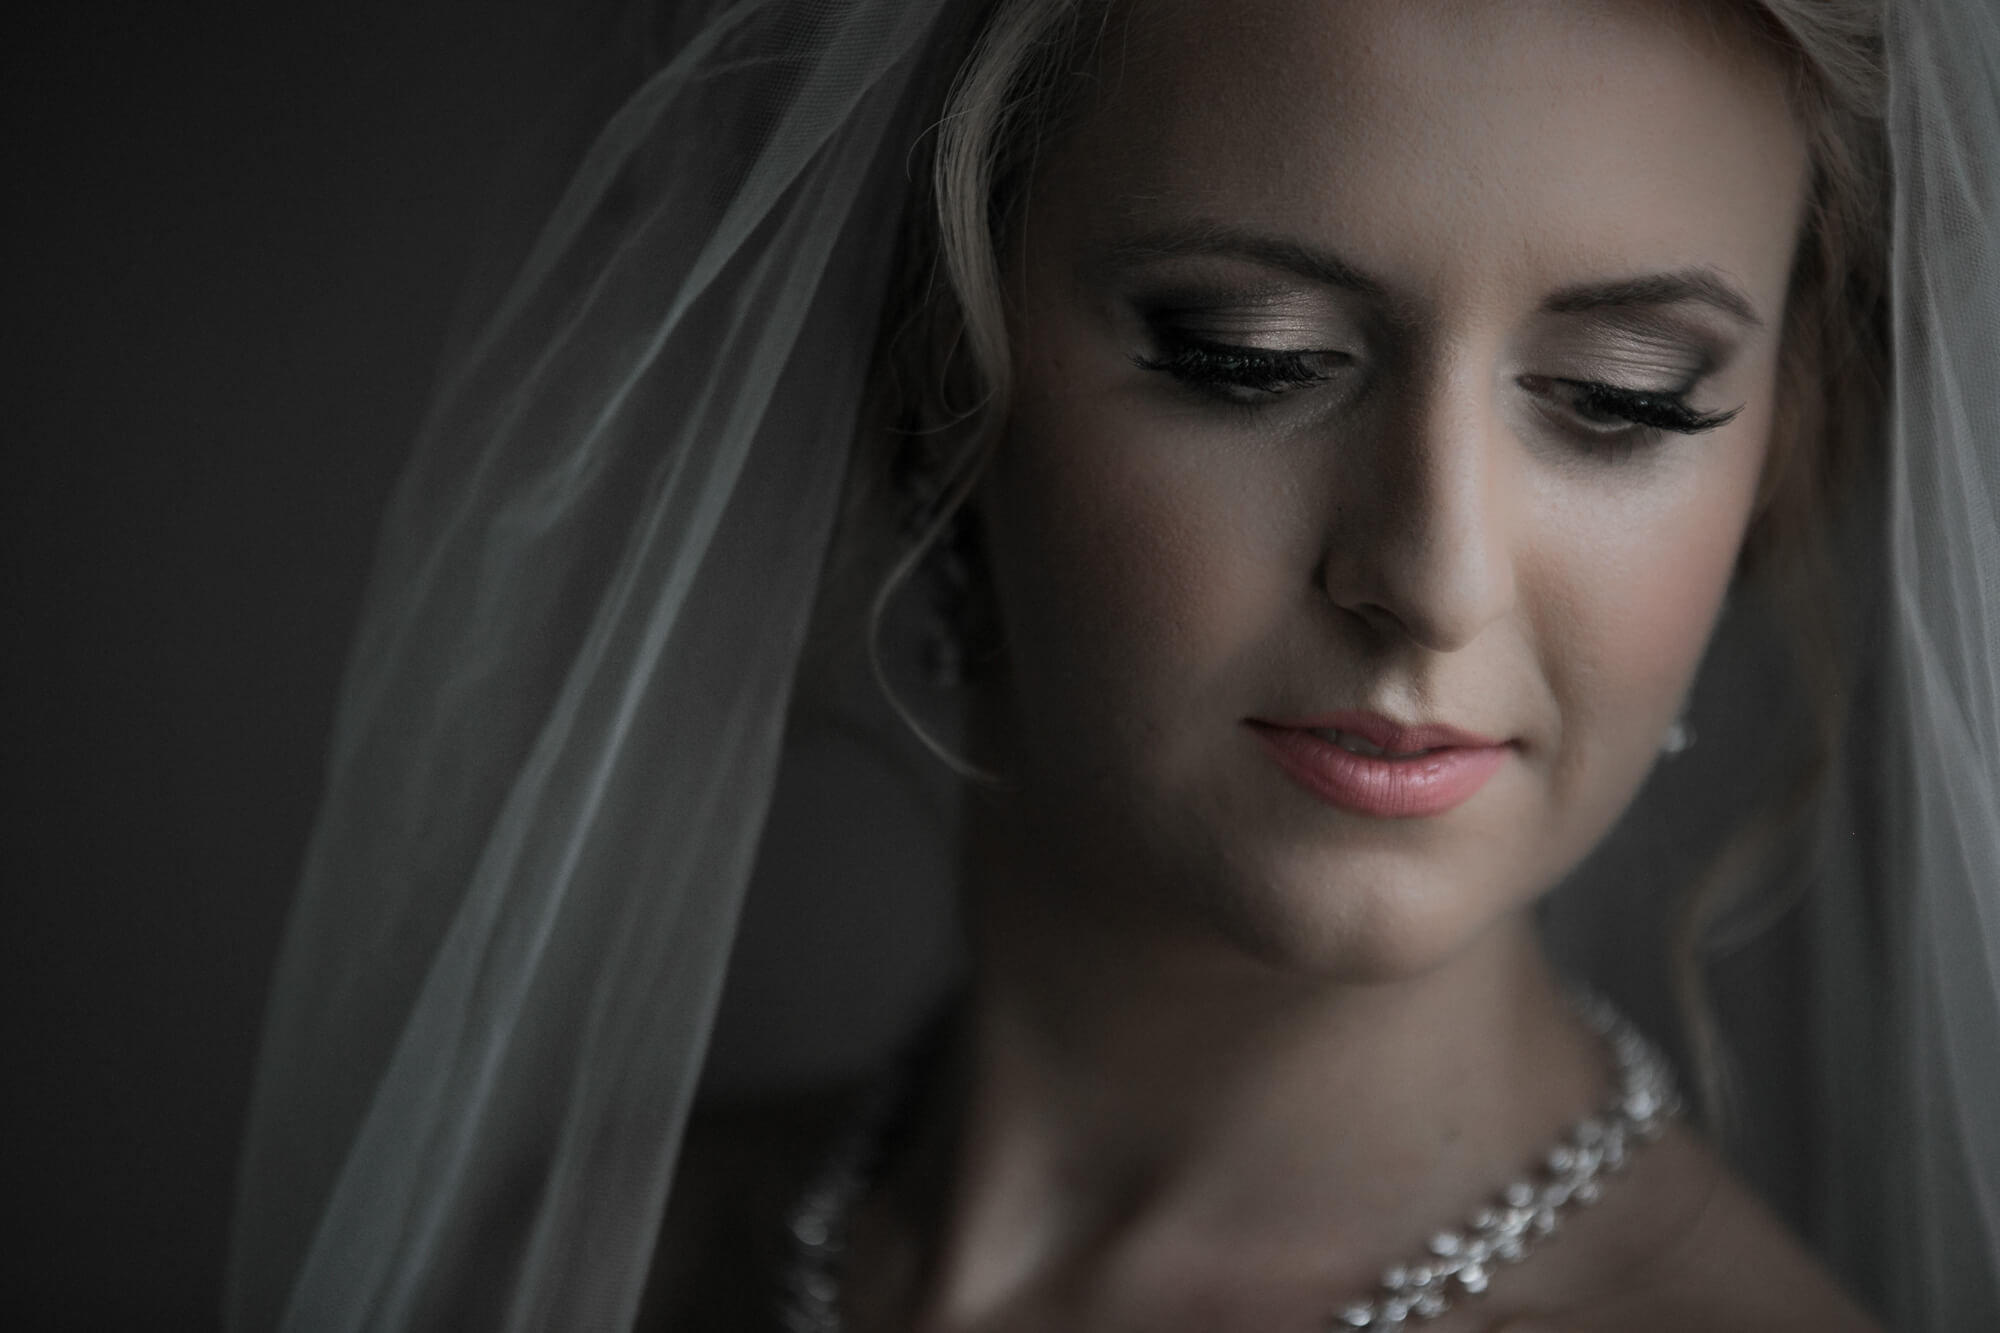 bride-portrait-from-christos-aggelidis-photography